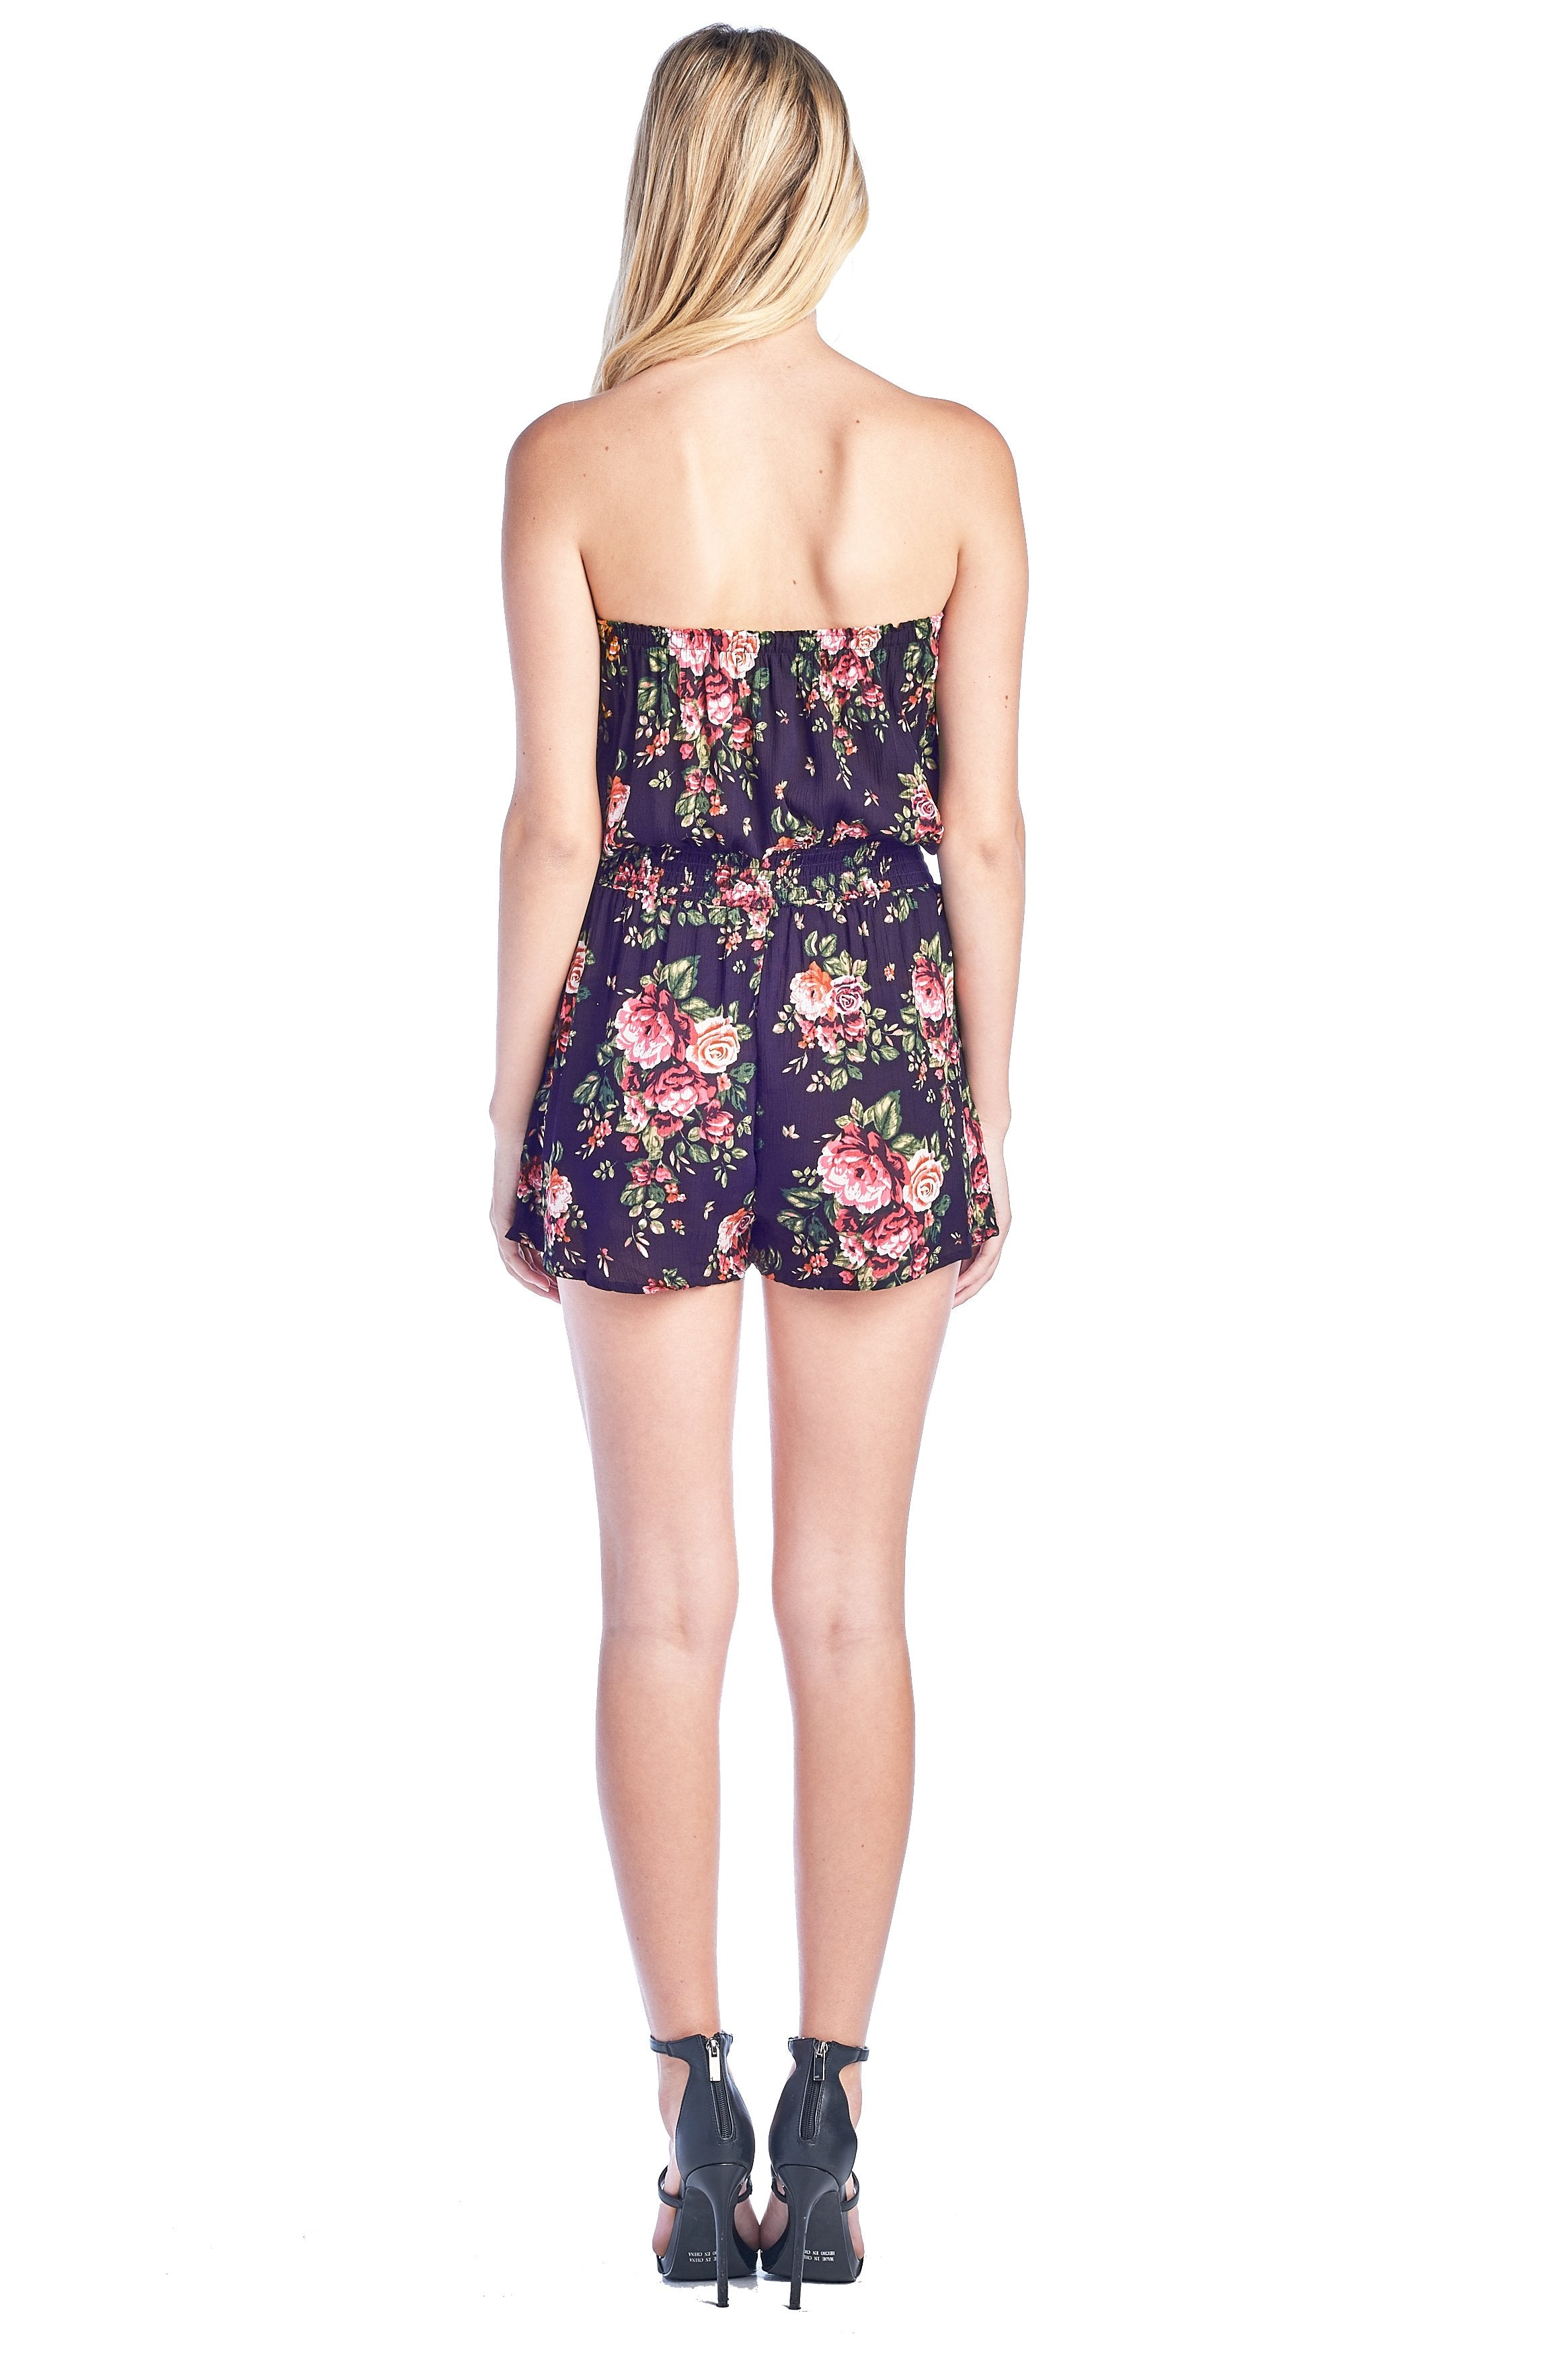 Women's Strapless Casual Smocked Ruched Stretch Floral Print Tube Off Shoulder Elastic Waist Band Shorts Romper